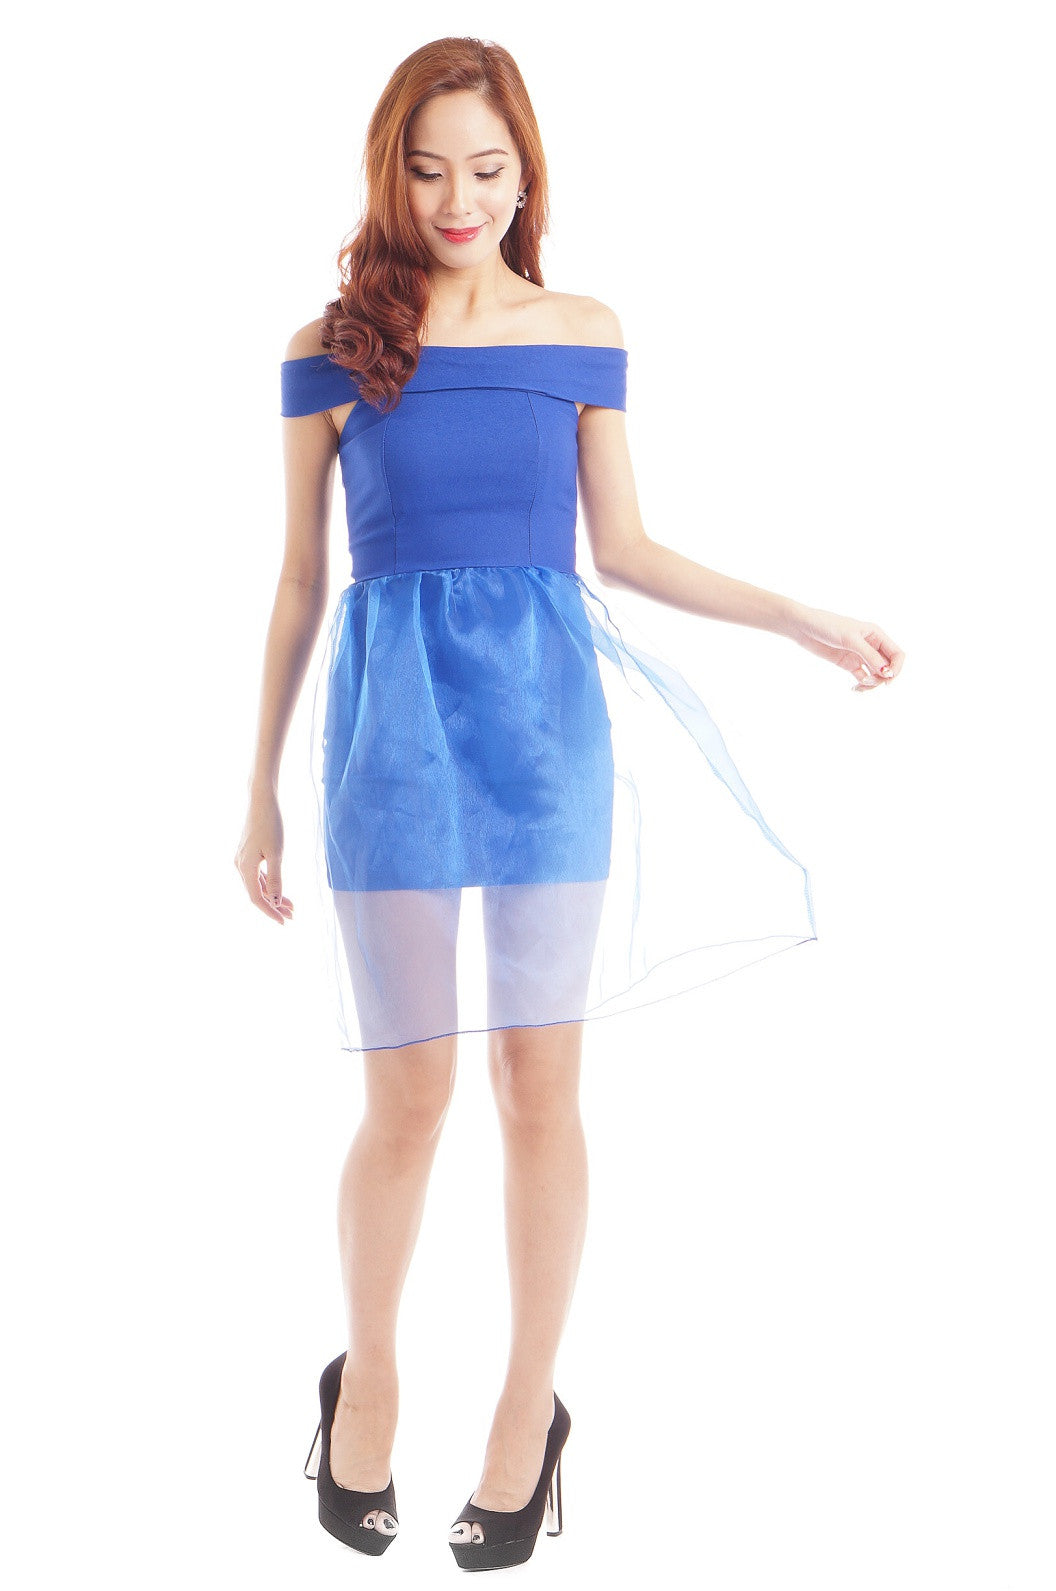 XENA ORGANZA OVERLAY DRESS IN ROYAL BLUE